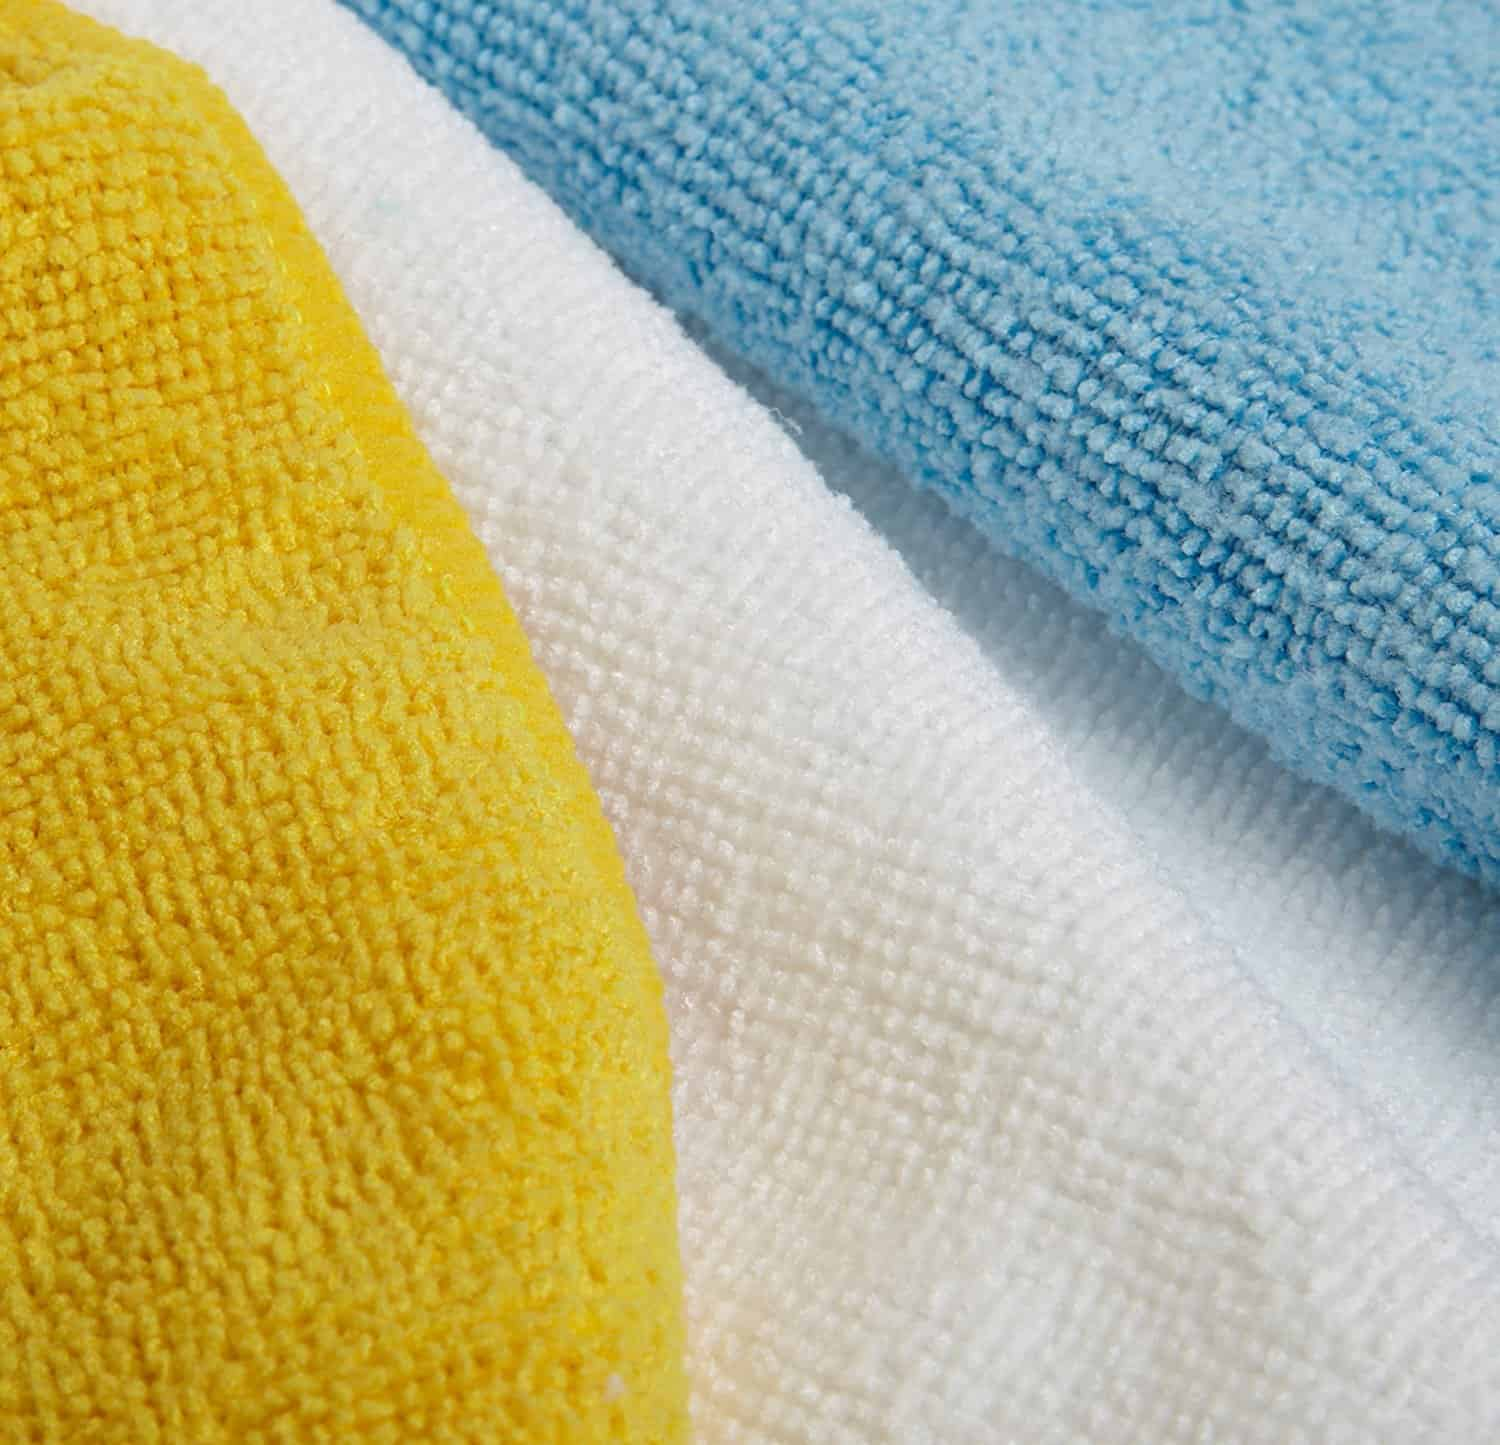 Microfiber towels for cleaning bathroom